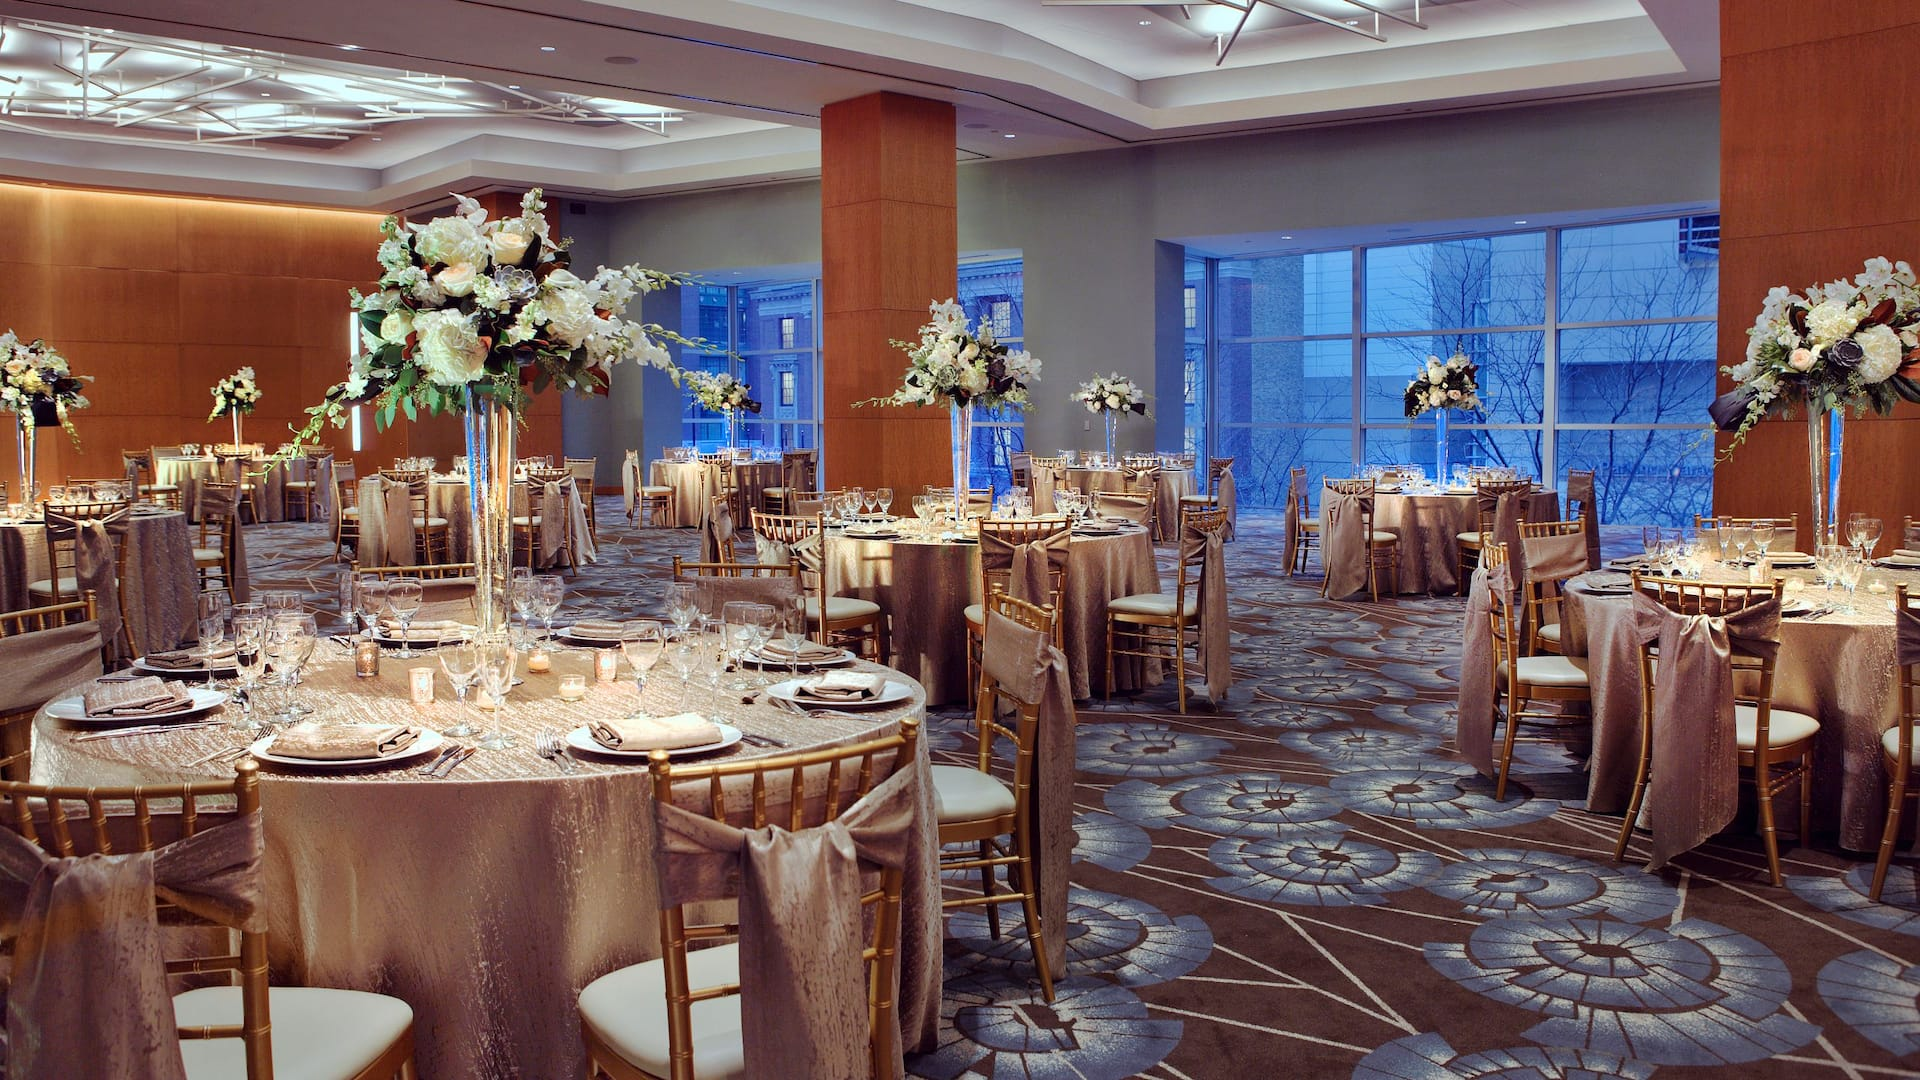 Hyatt Regency McCormick Place Wedding Venue